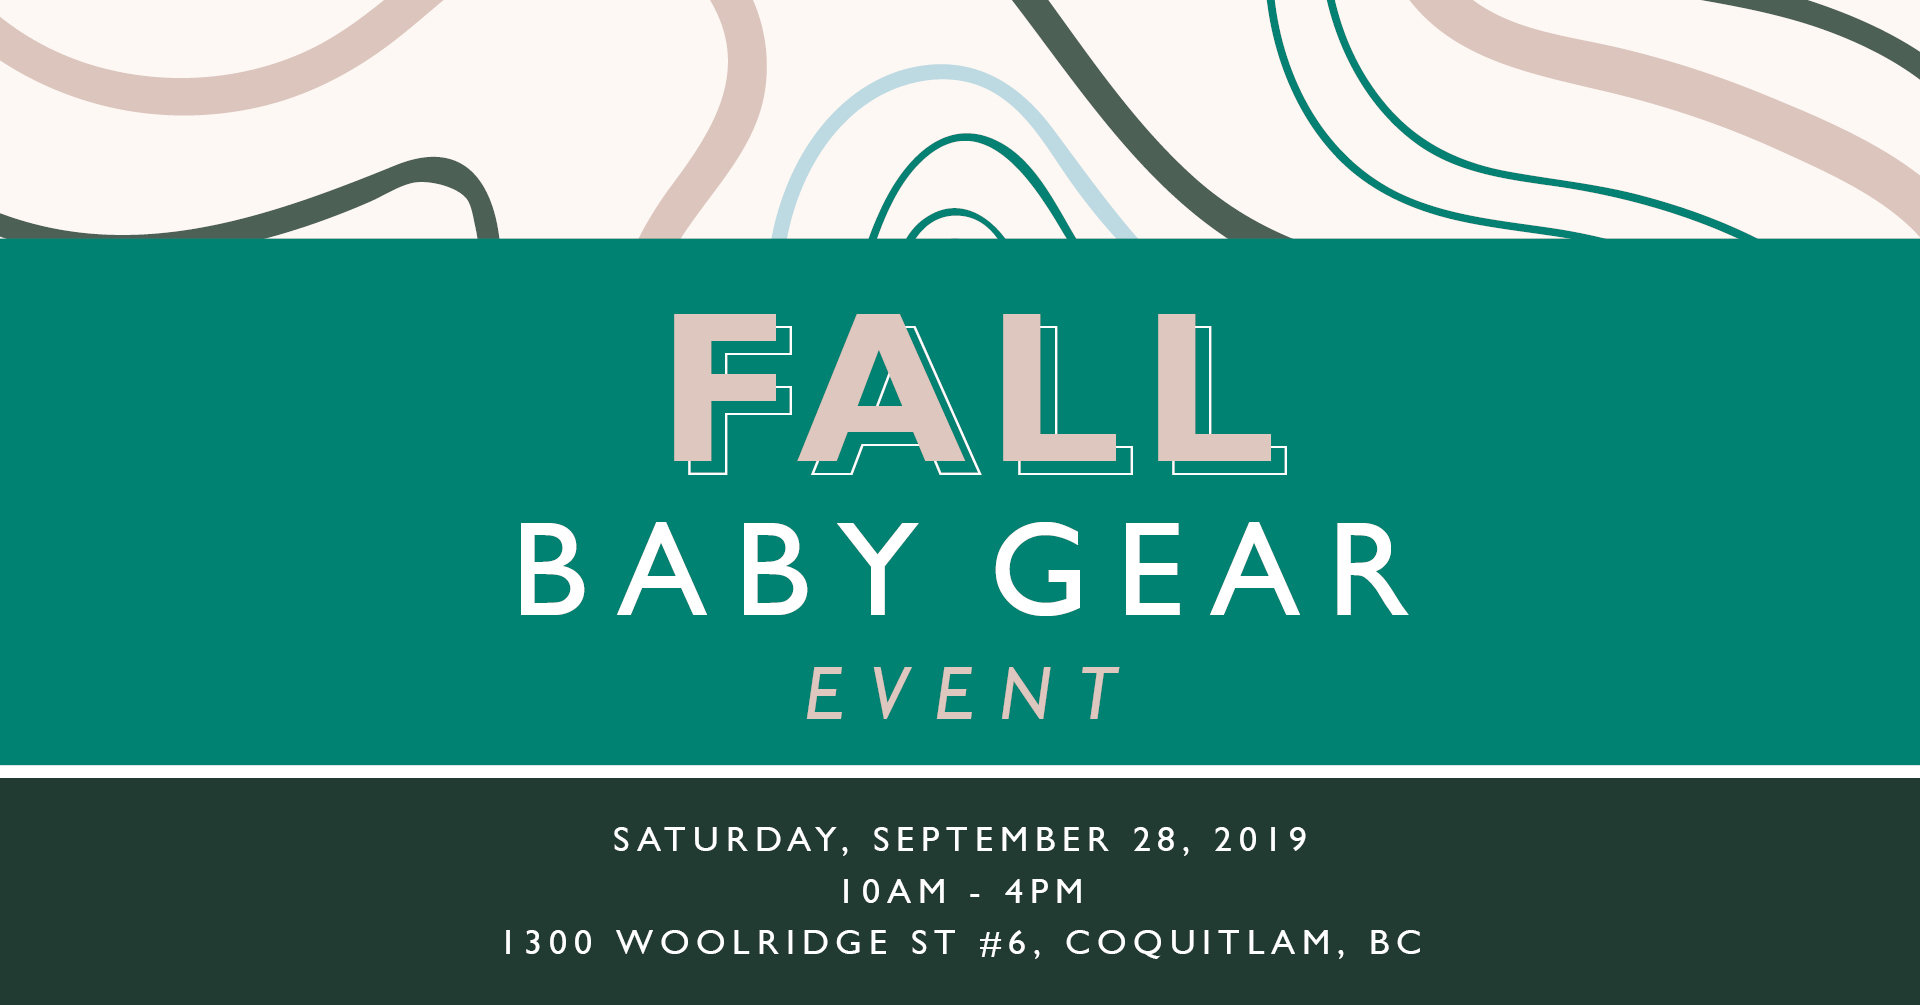 Fall-Baby-Gear-Day-Coquitlam